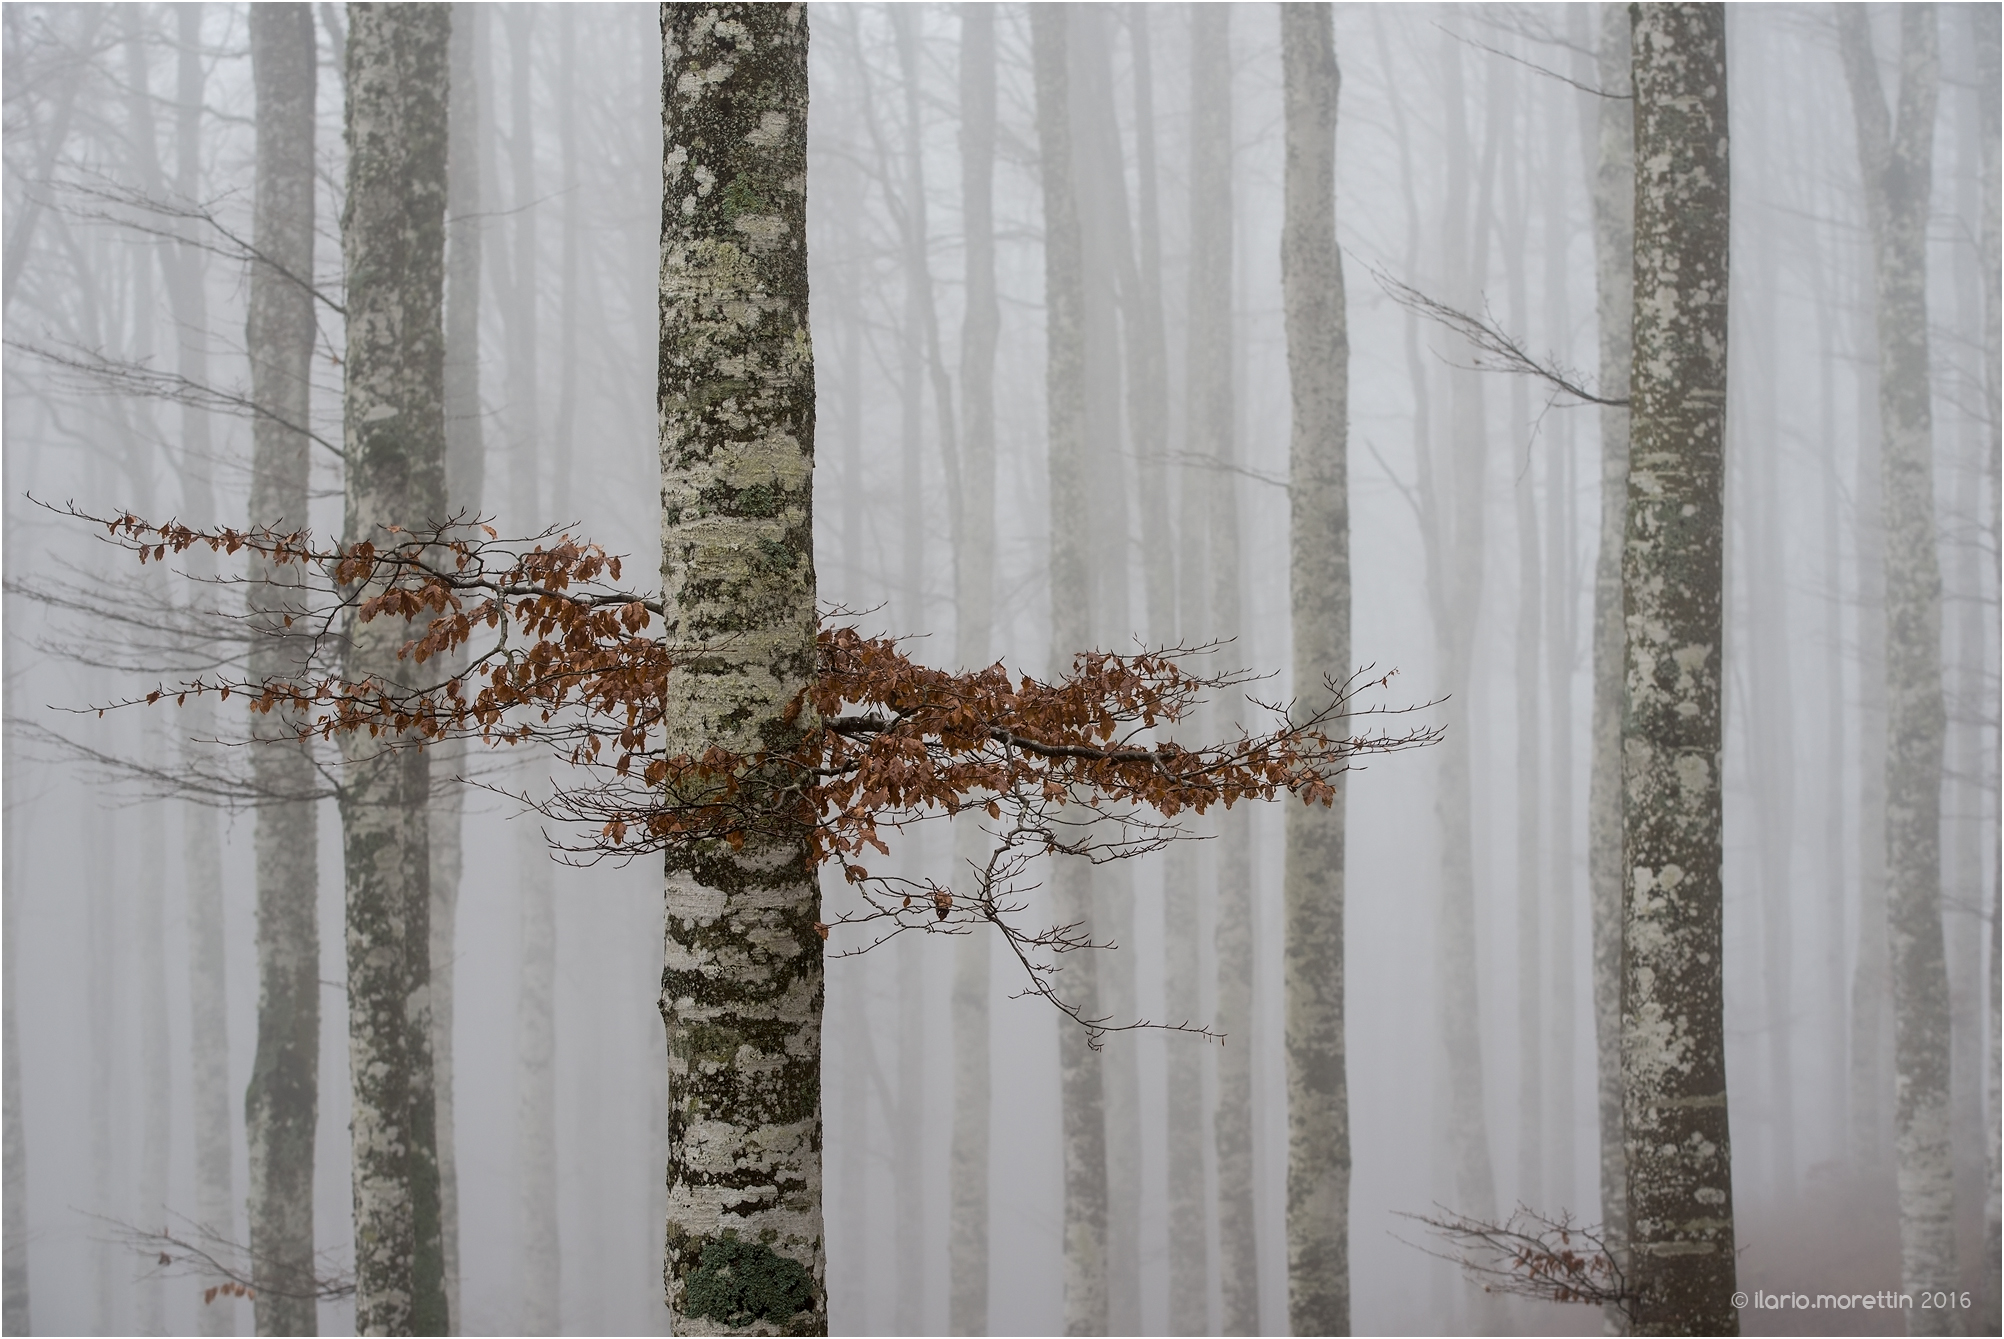 The fog in the forest...